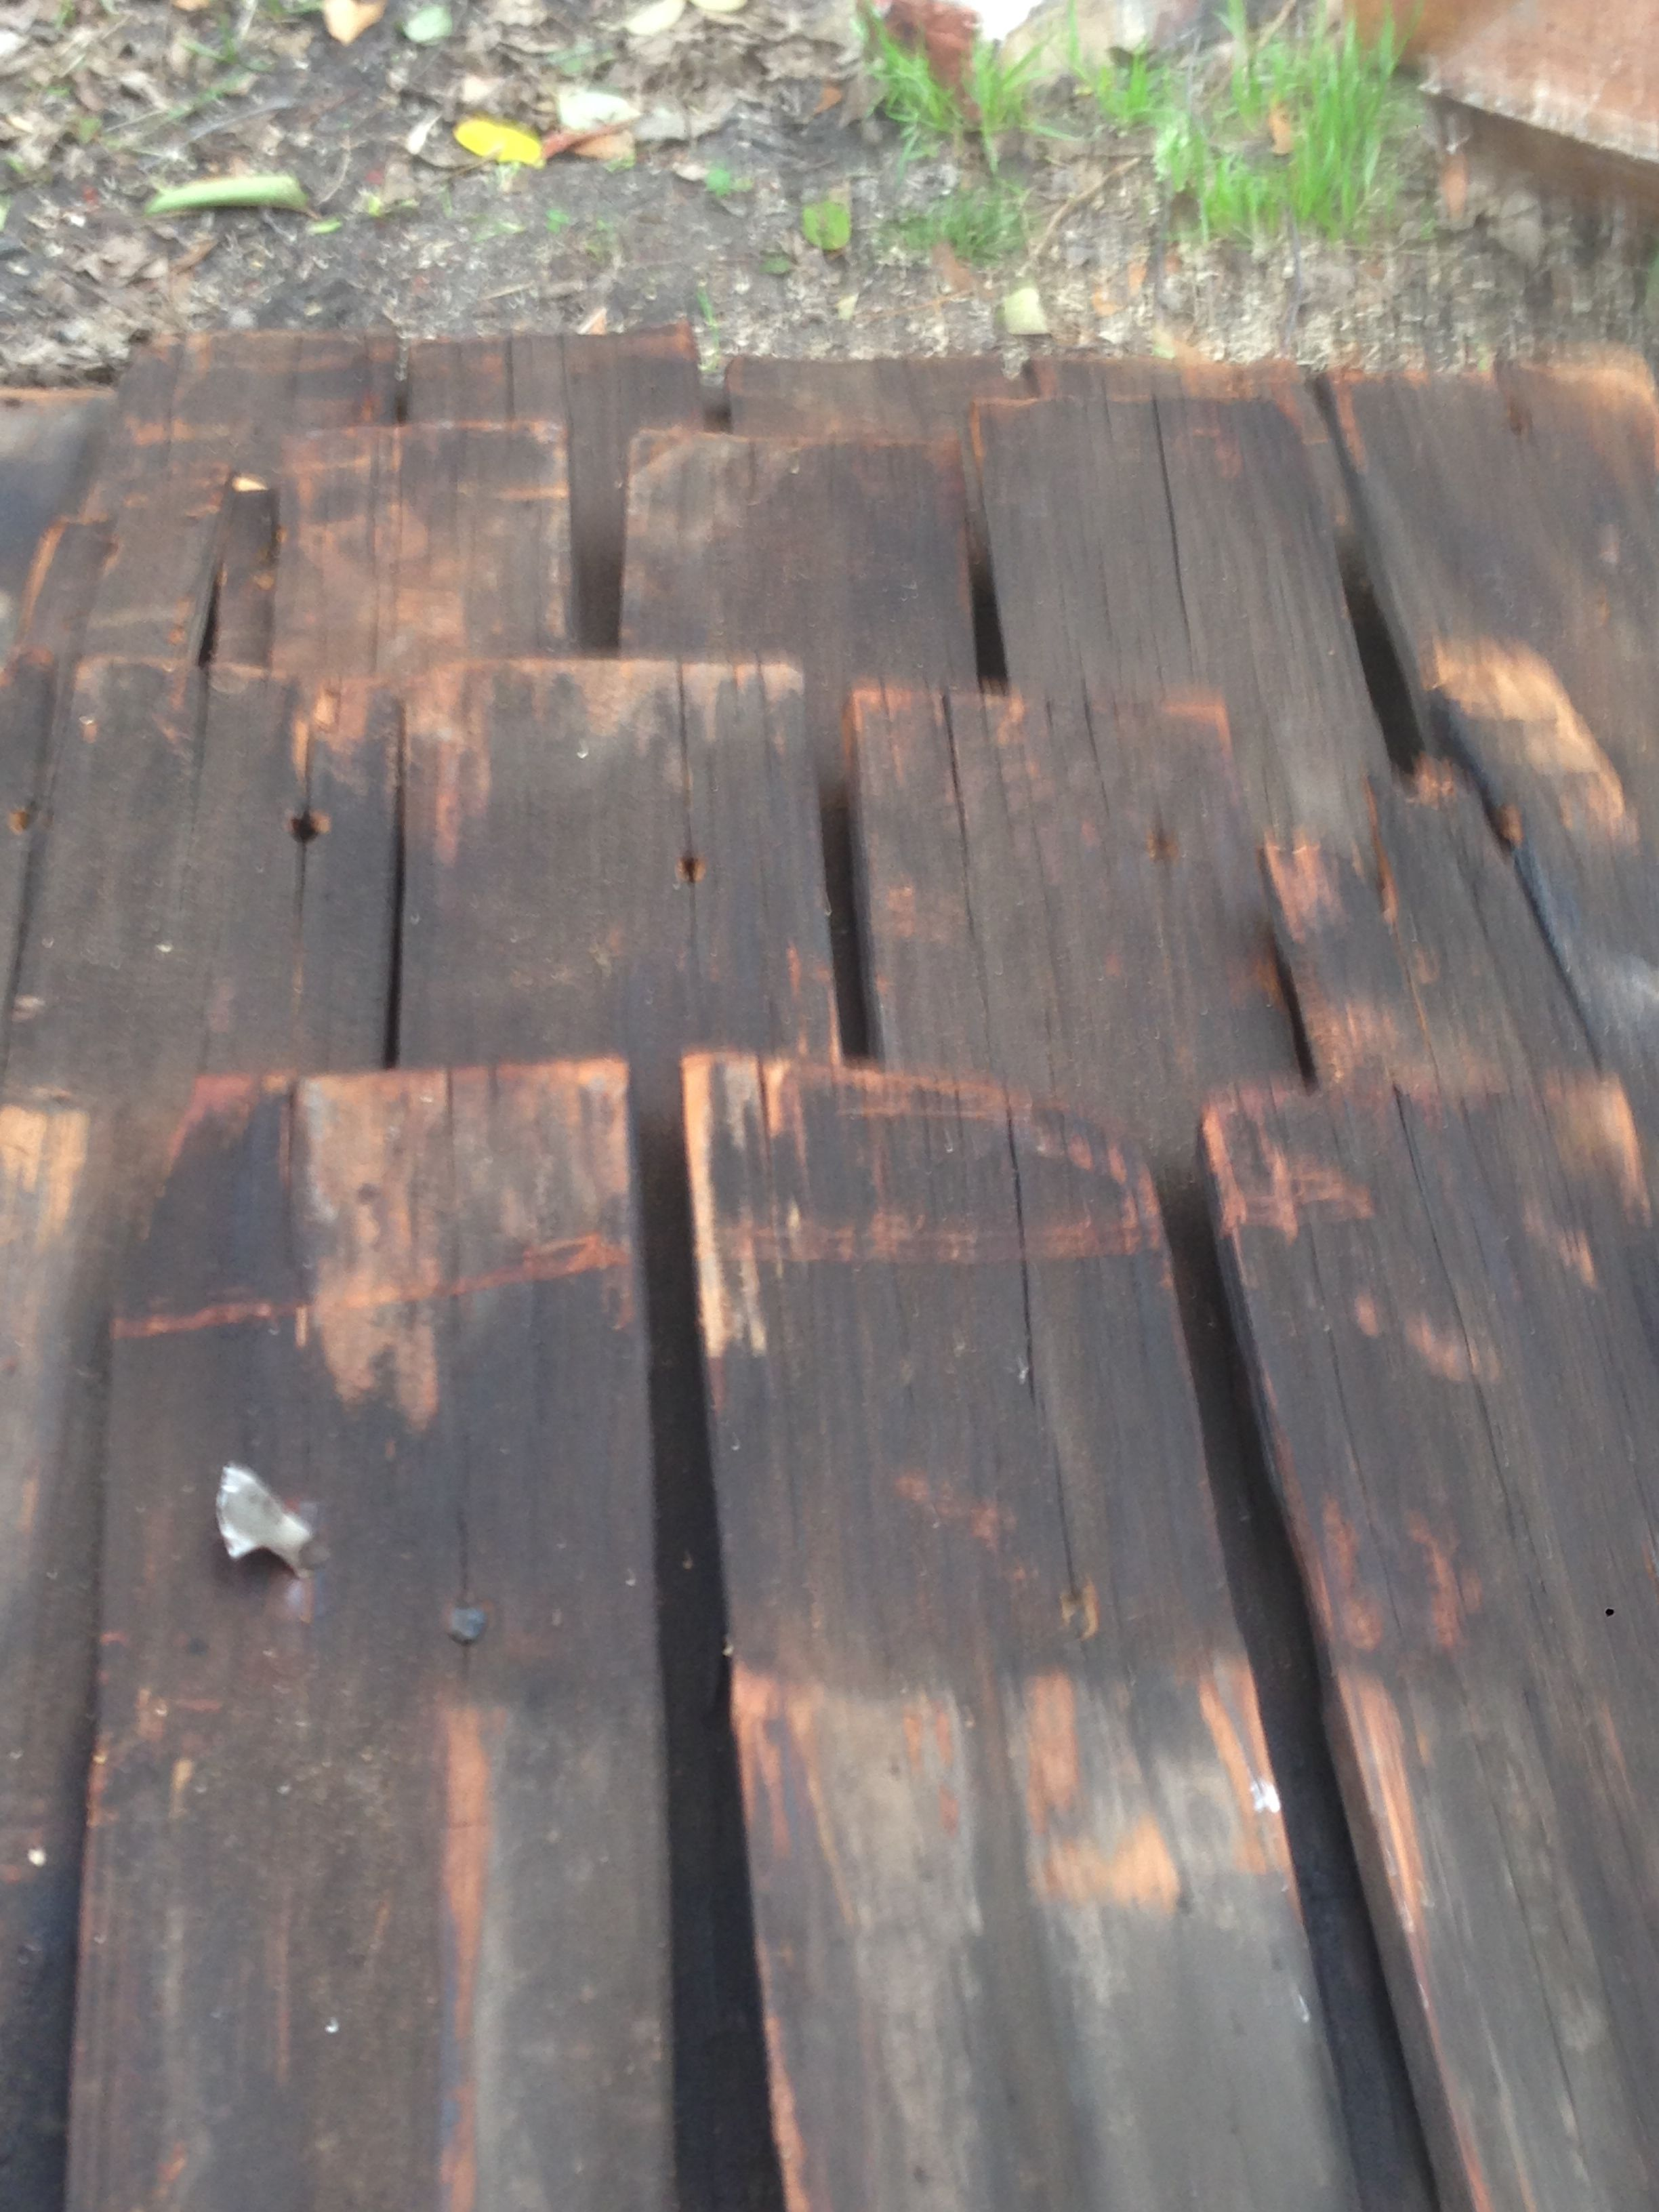 Old Original Shingles From Under The Old Tin Roof On The